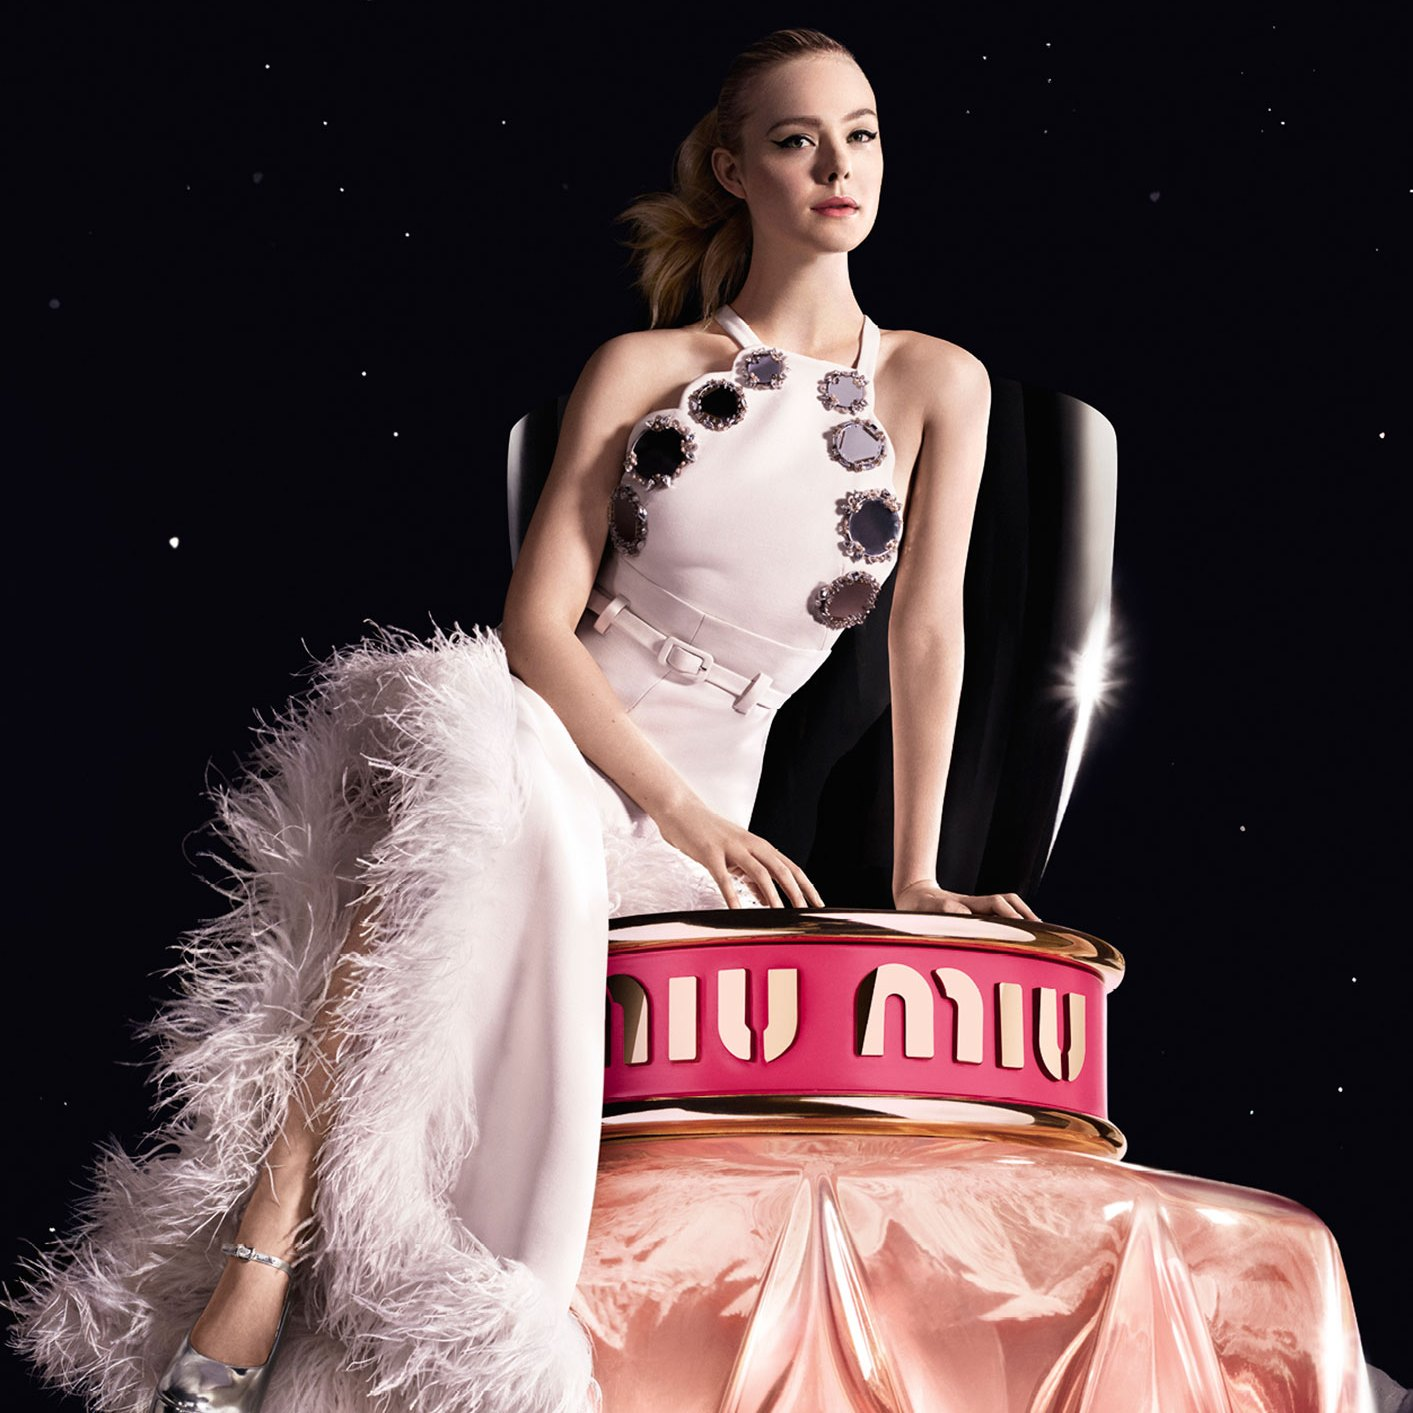 Elle Fanning Is Pretty in Pink in Miu Miu Campaign